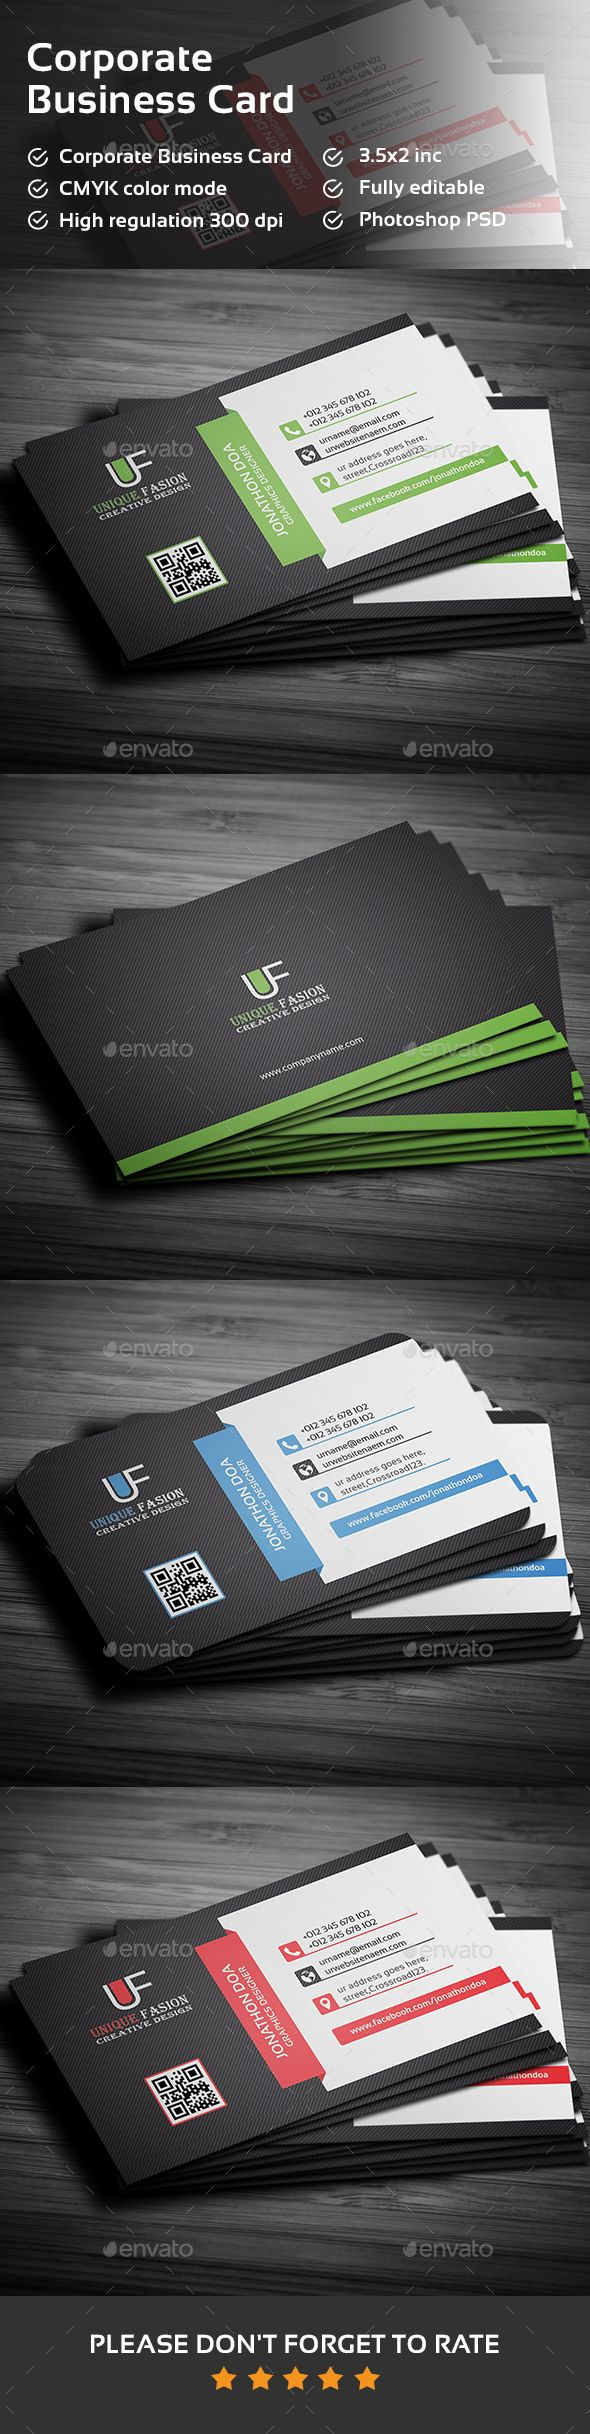 3023 best nice business cards on pinterest images on pinterest business card magicingreecefo Choice Image